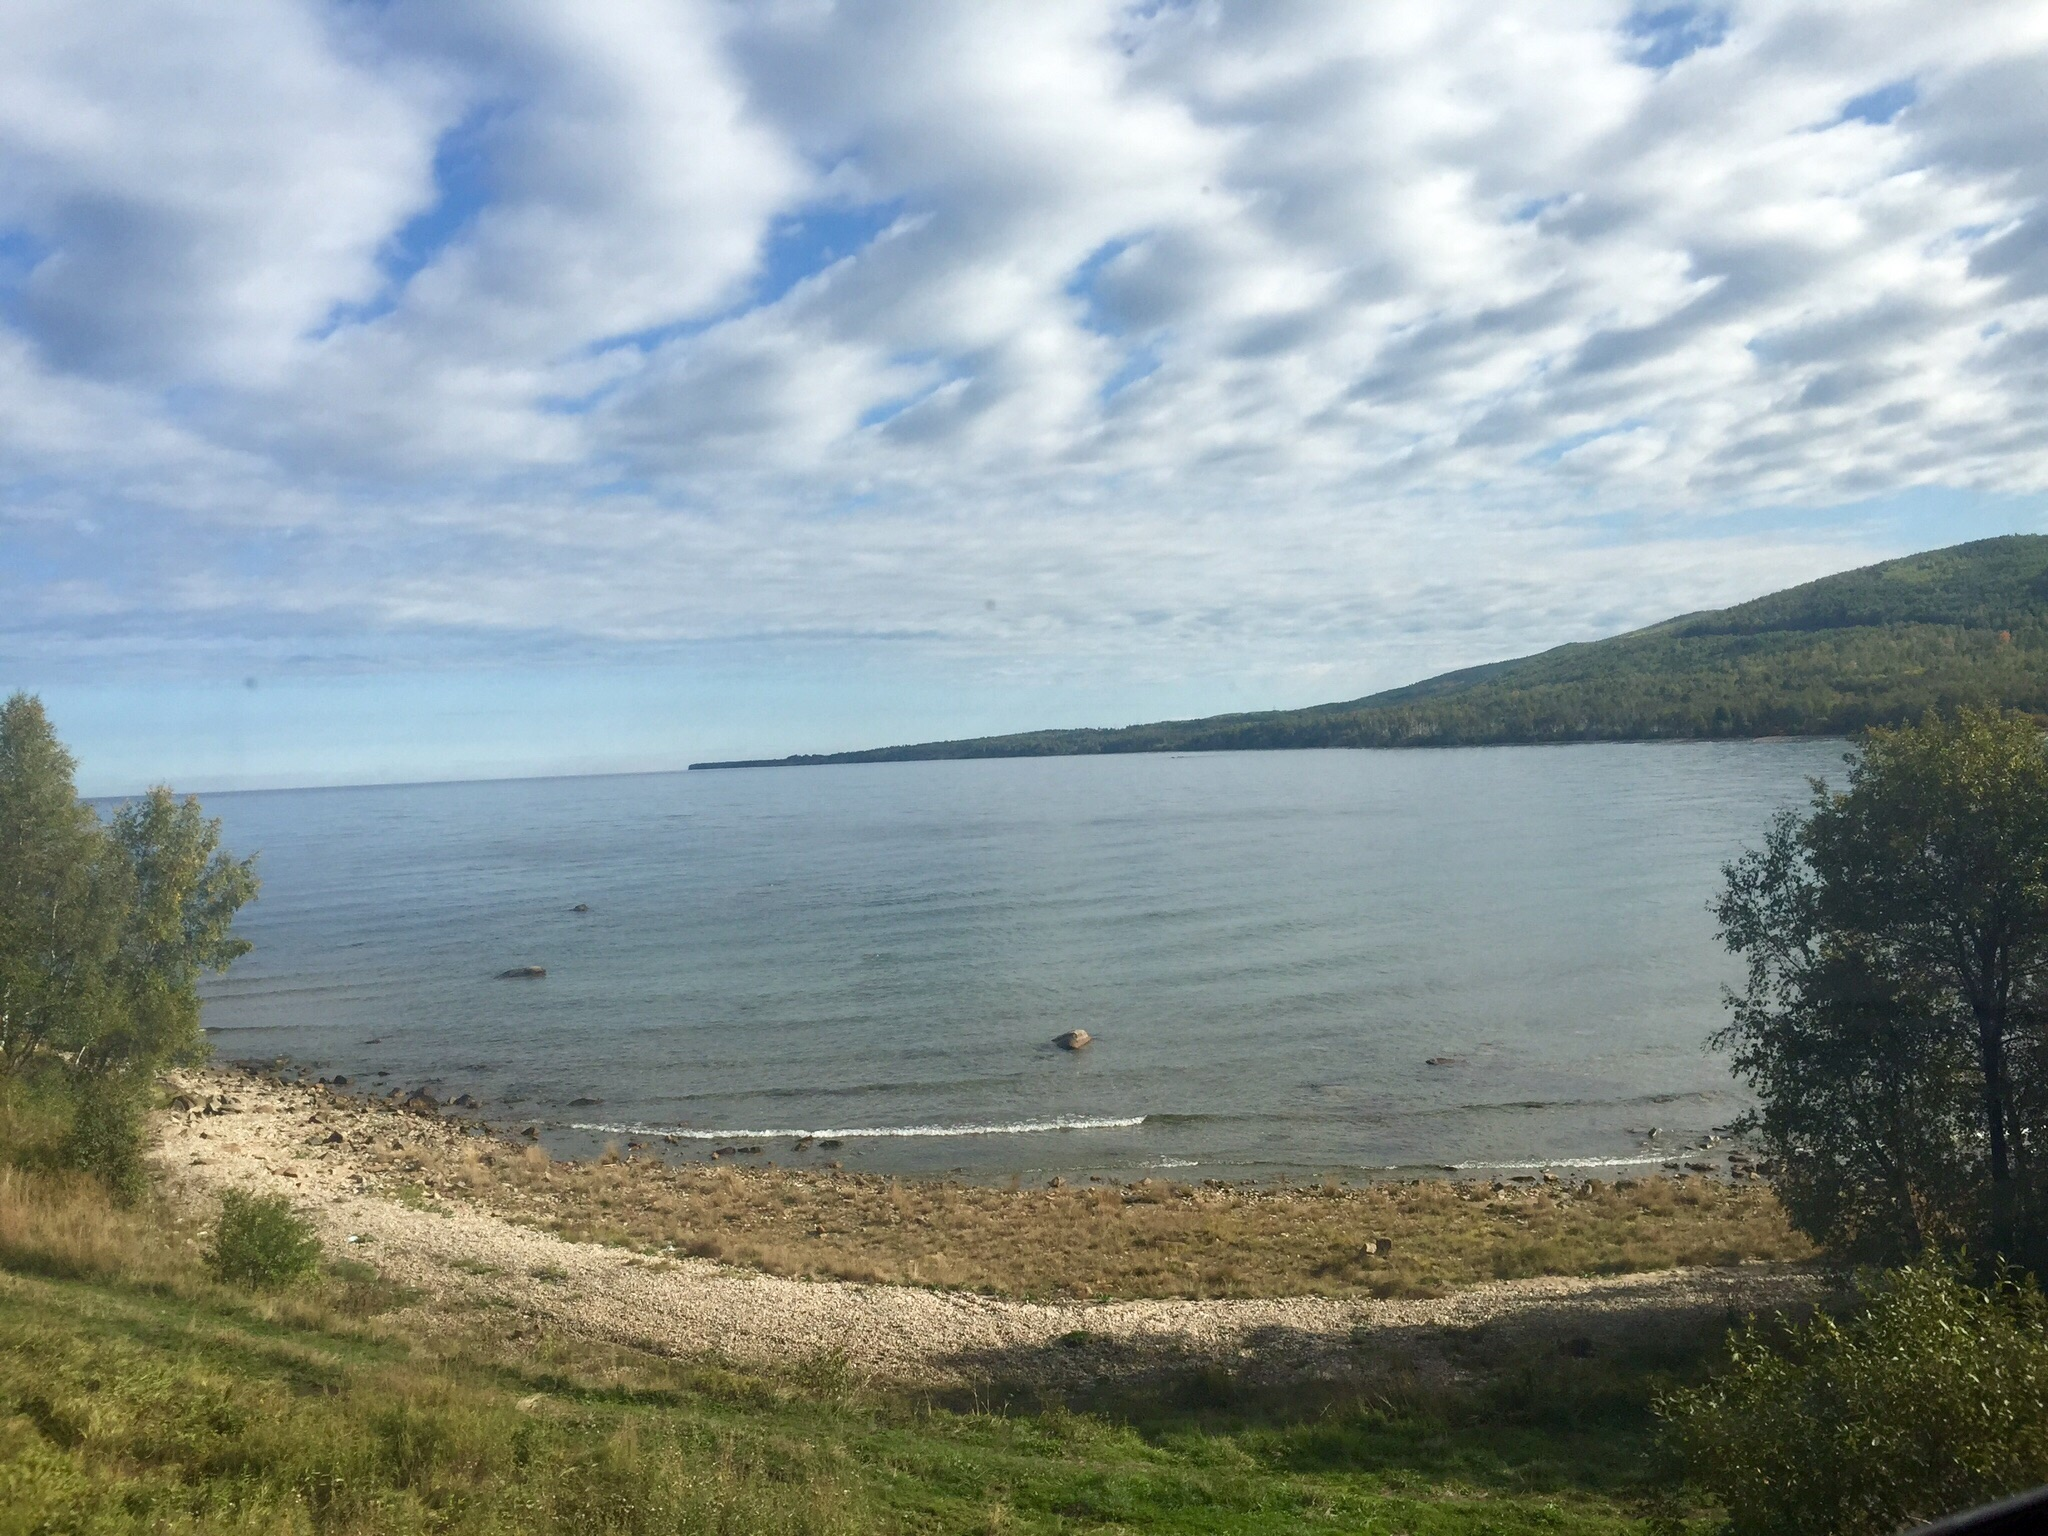 We have arrived at Lake Baikal